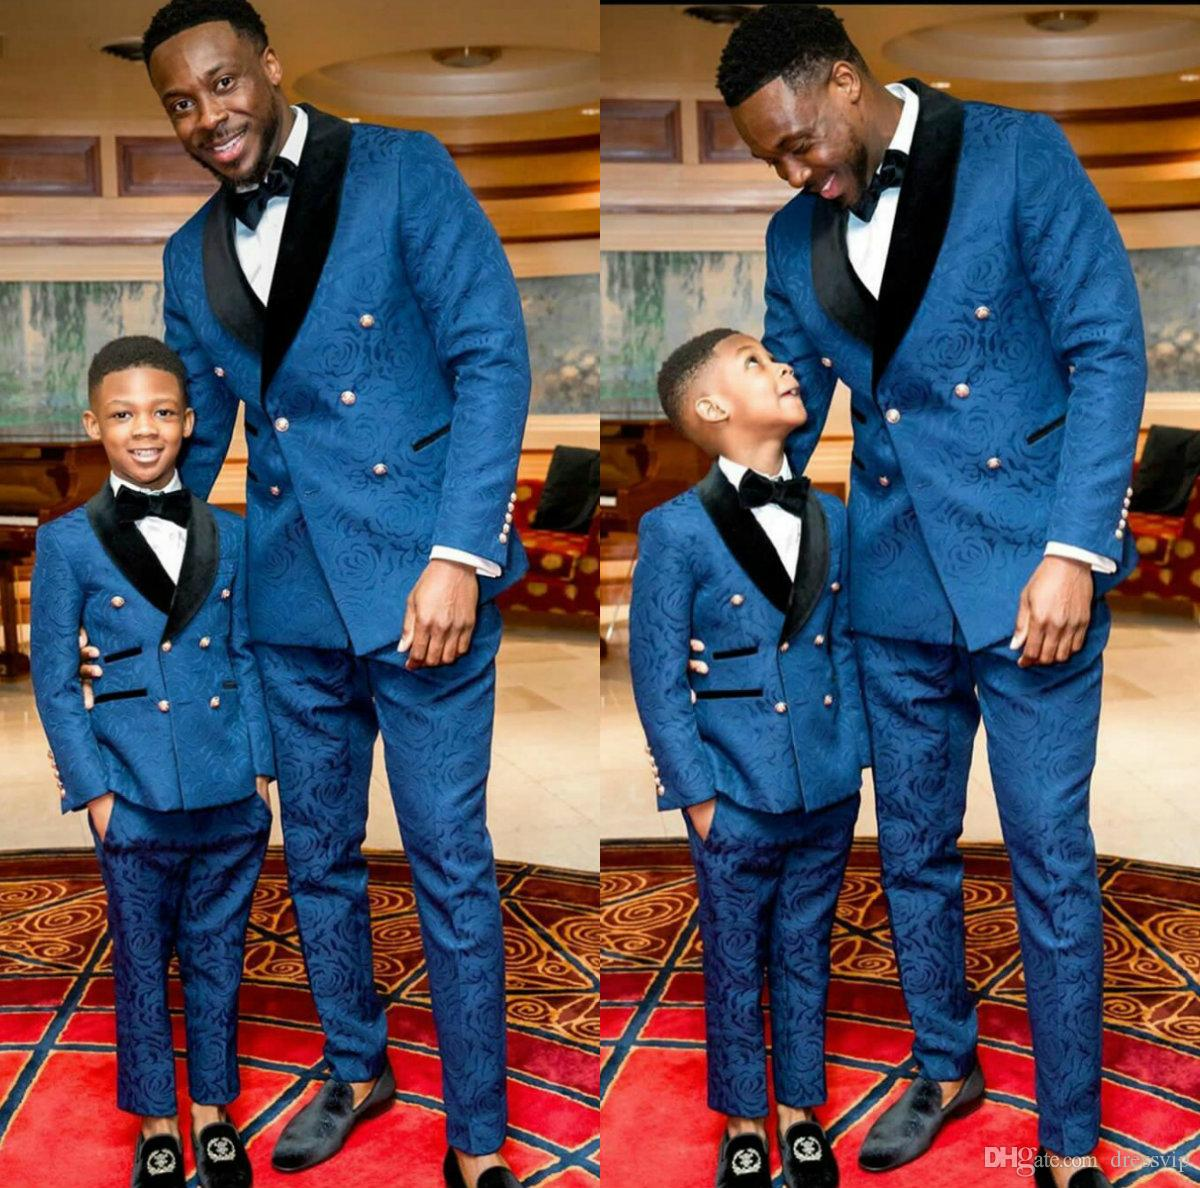 Black and Blue Boy Formal Suits Dinner Tuxedos Little Boy Groomsmen Kids Children For Wedding Party Prom Suit Formal Wear (Jackets+Pants)